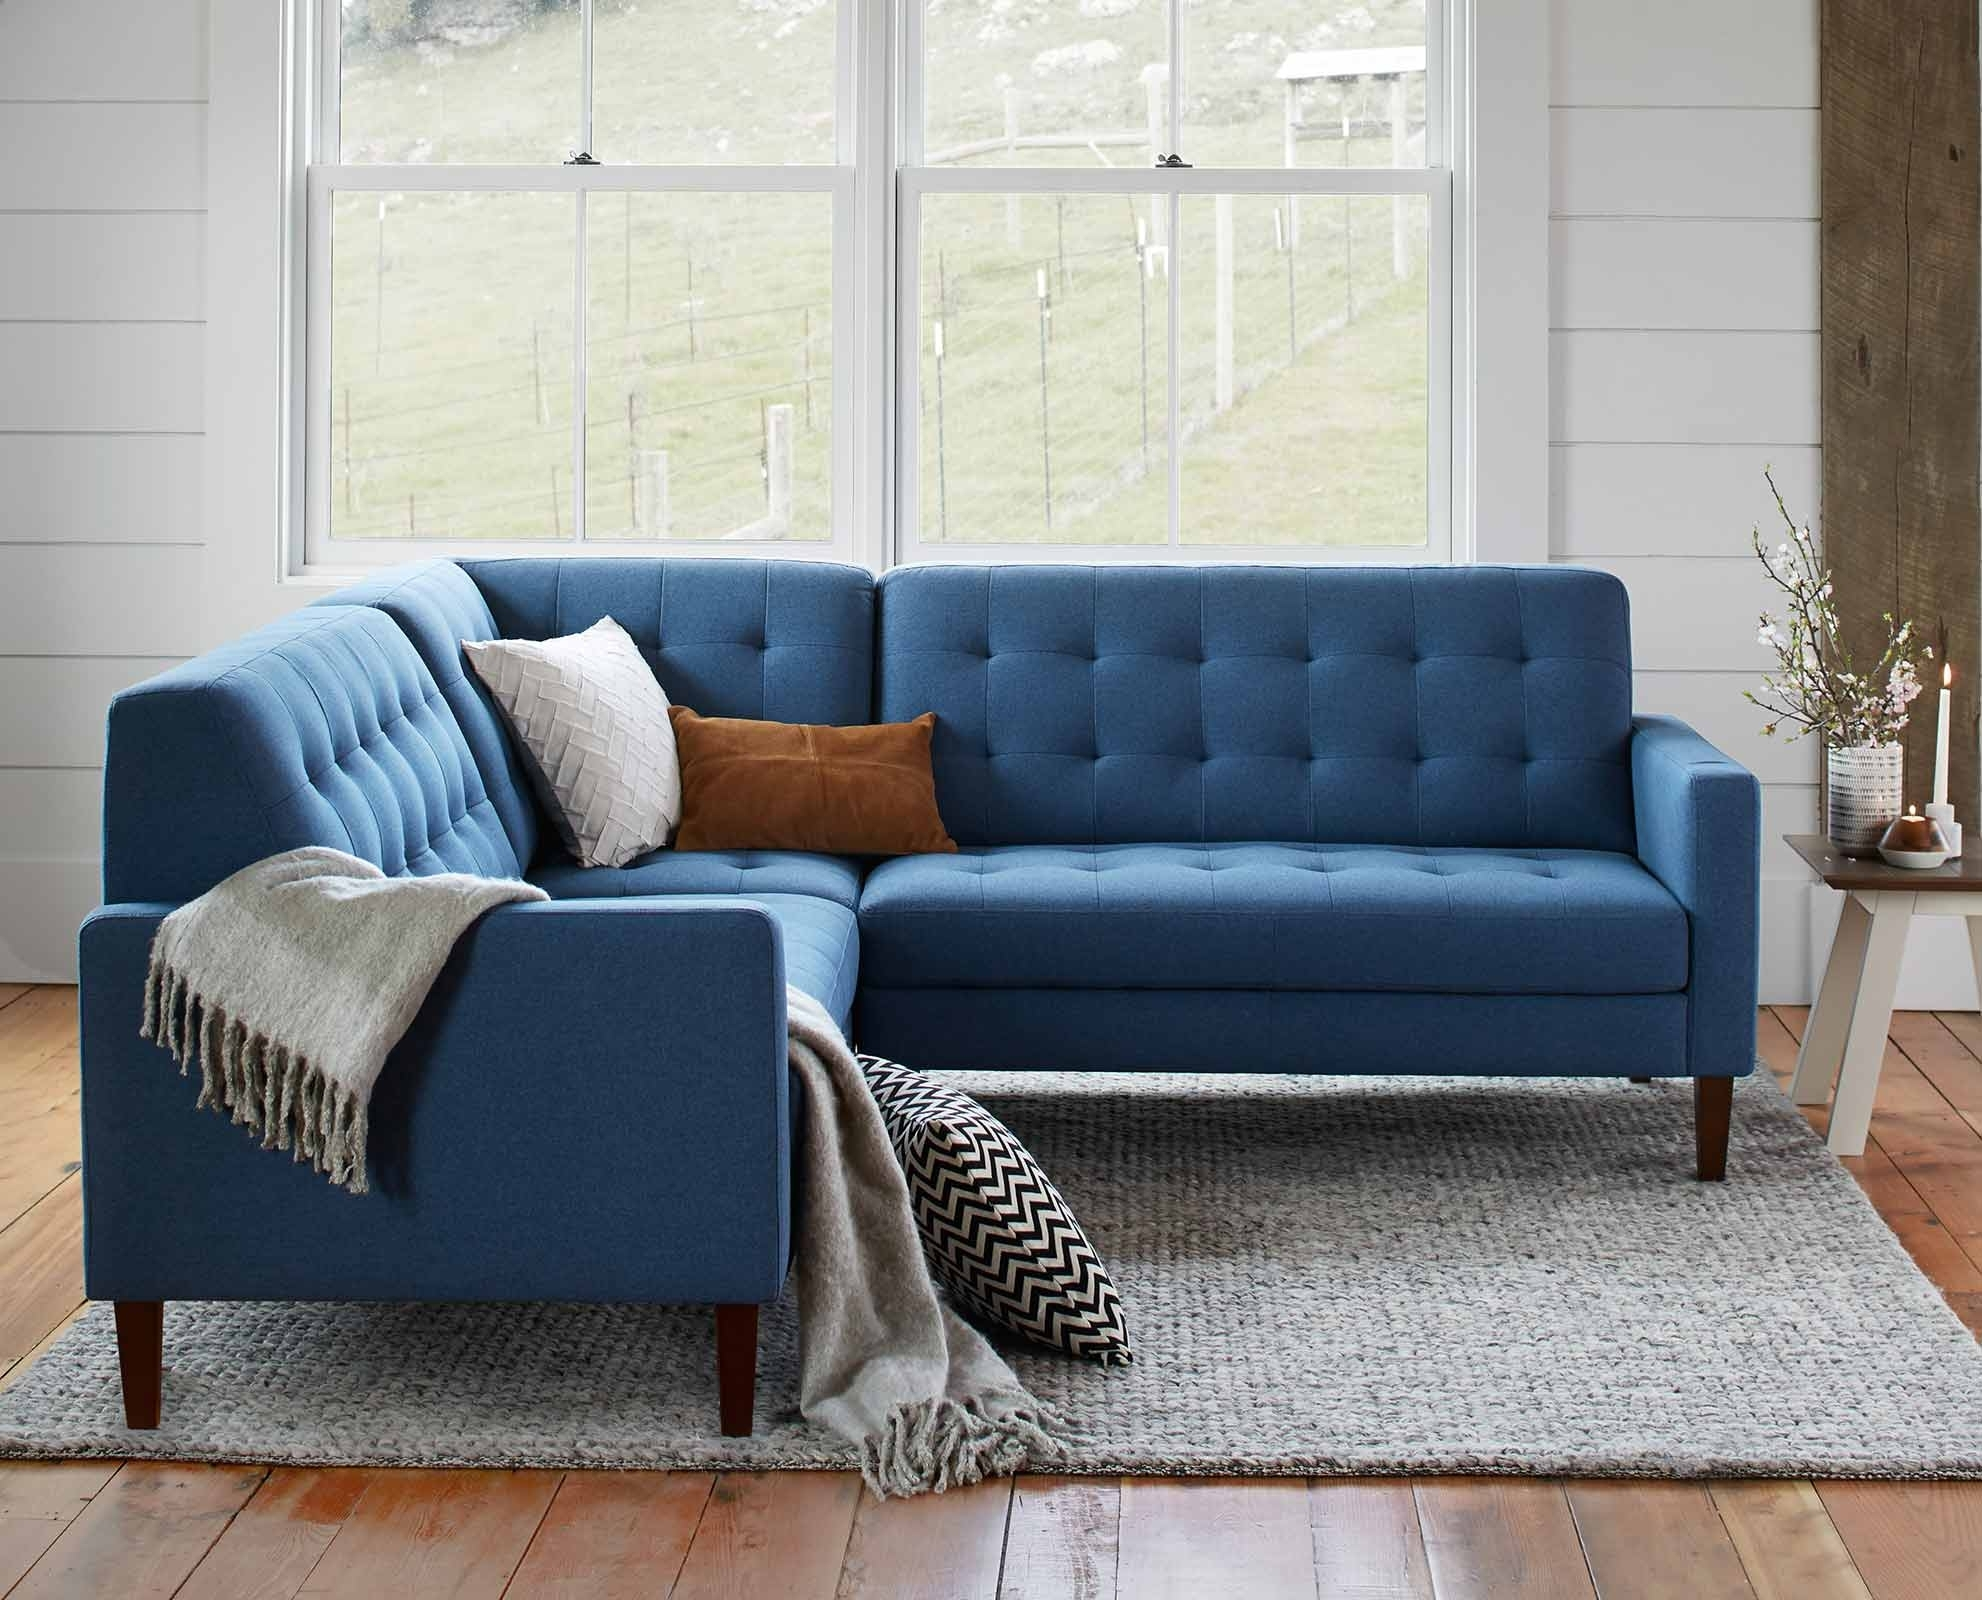 The Camilla Sectional From Scandinavian Designs – Adopt A Adopt A Throughout Dania Sectional Sofas (View 2 of 10)